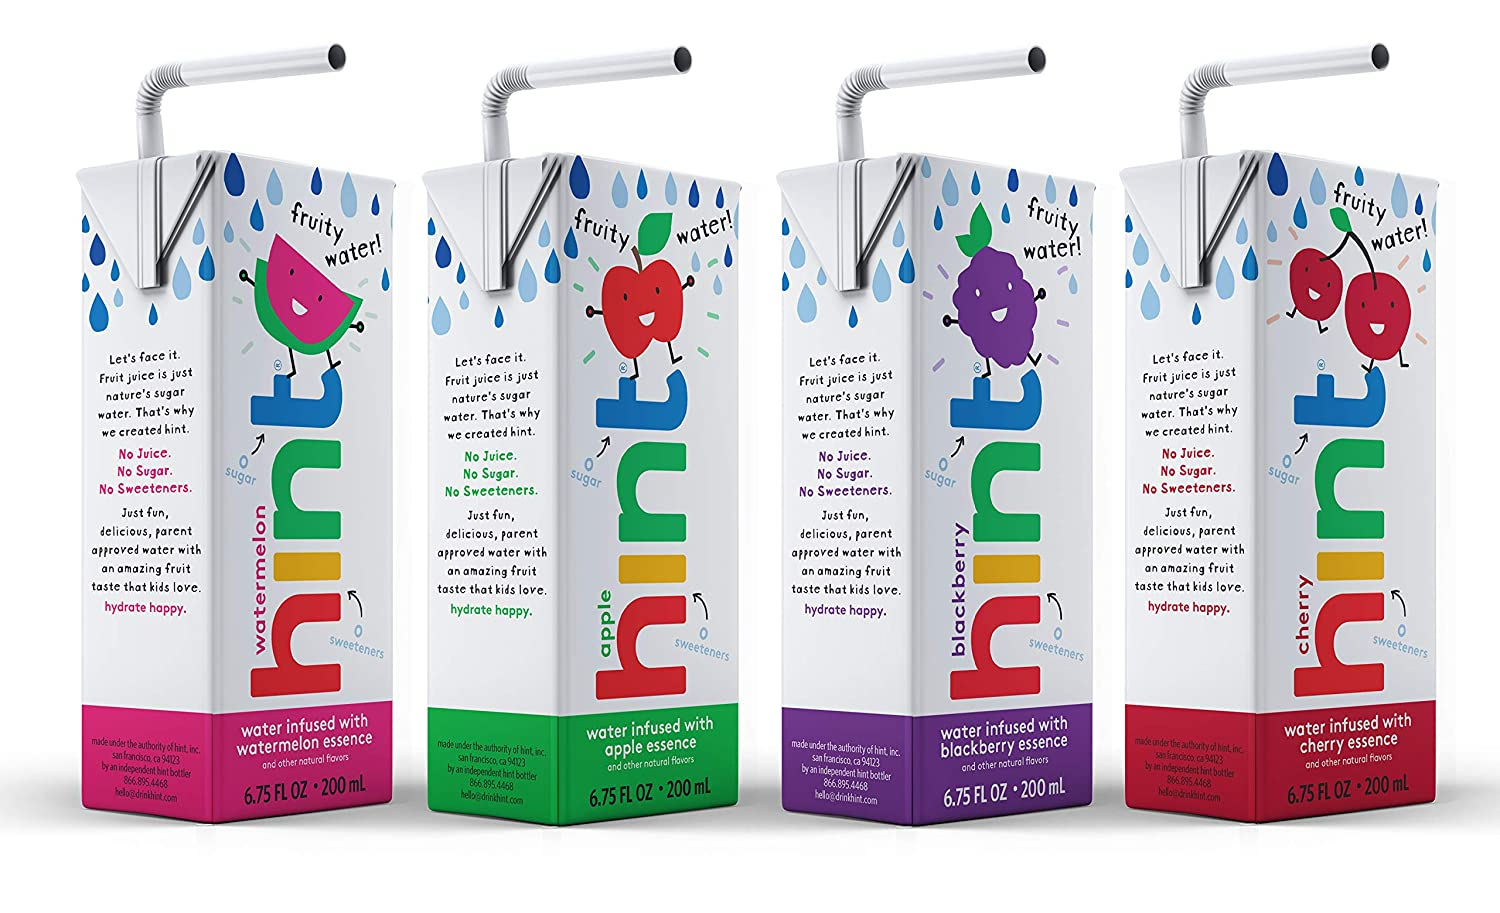 Hint Kids Water Variety Pack, (Pack of 32) 6.75 Oz Boxes, 8 Boxes Each of: Cherry, Watermelon, Apple, & Blackberry, Unsweet Water with Zero Diet Sweeteners